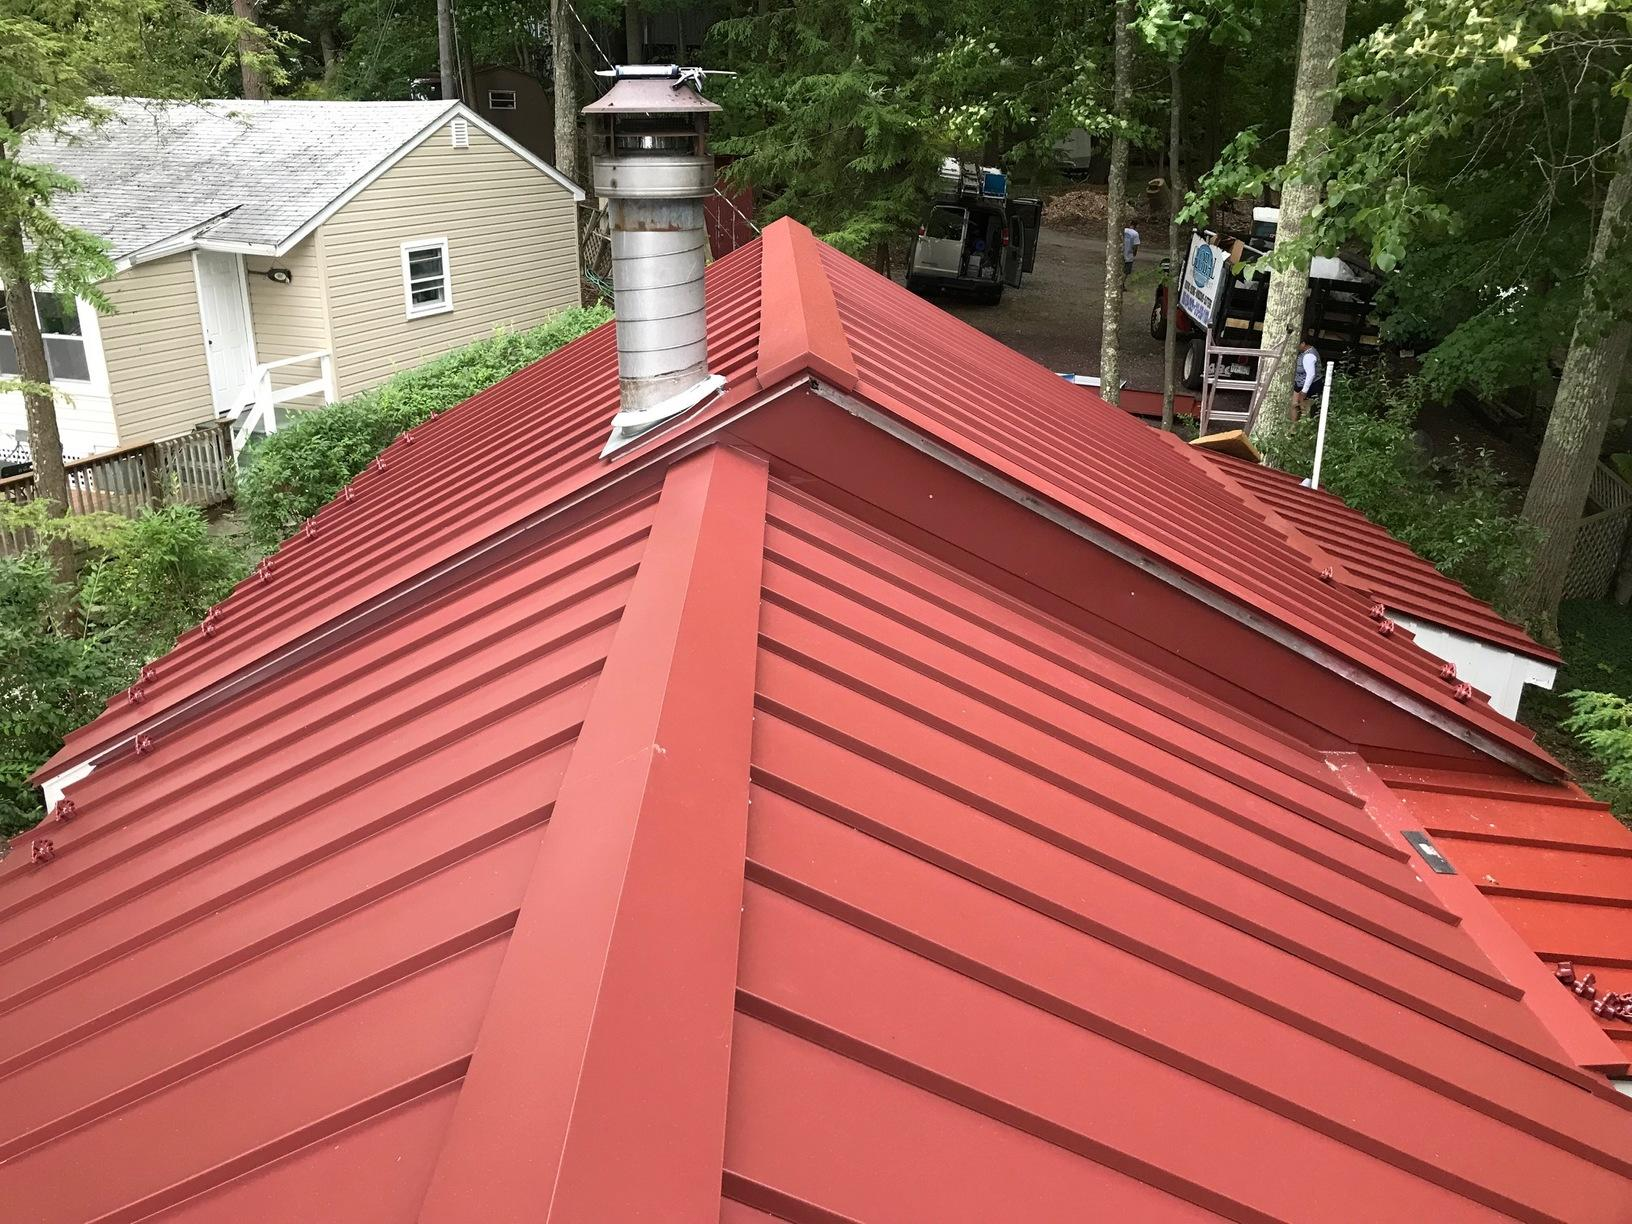 Colonial Red Standing Seam Metal Roof Installed on Lakeside Cabin in Newton, NJ